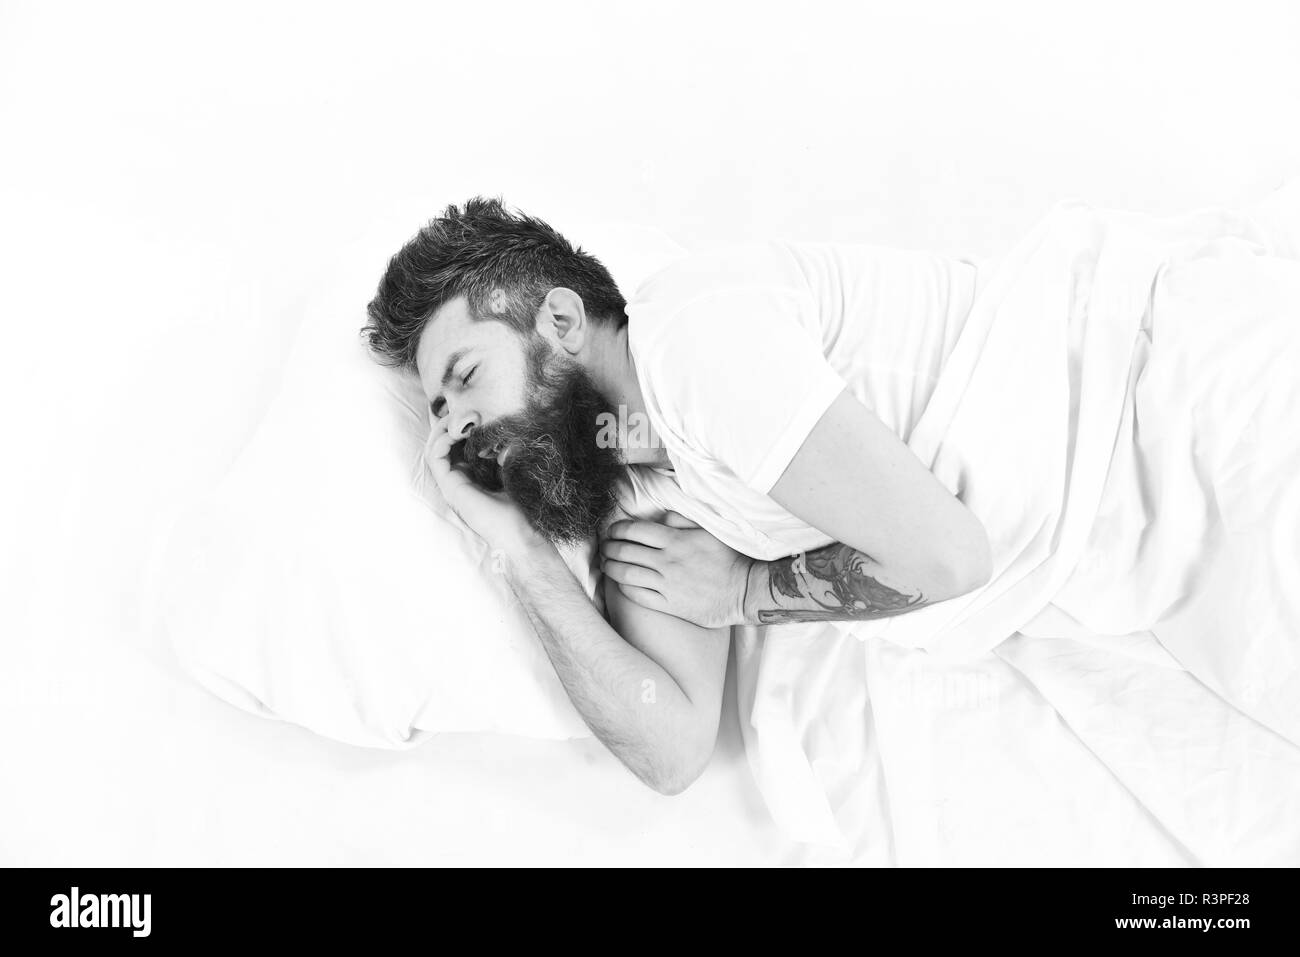 Hipster with beard fall asleep. Man with sleepy face lies on pillow. Deep sleep concept. Man with beard and mustache in deep sleep, white background.  - Stock Image